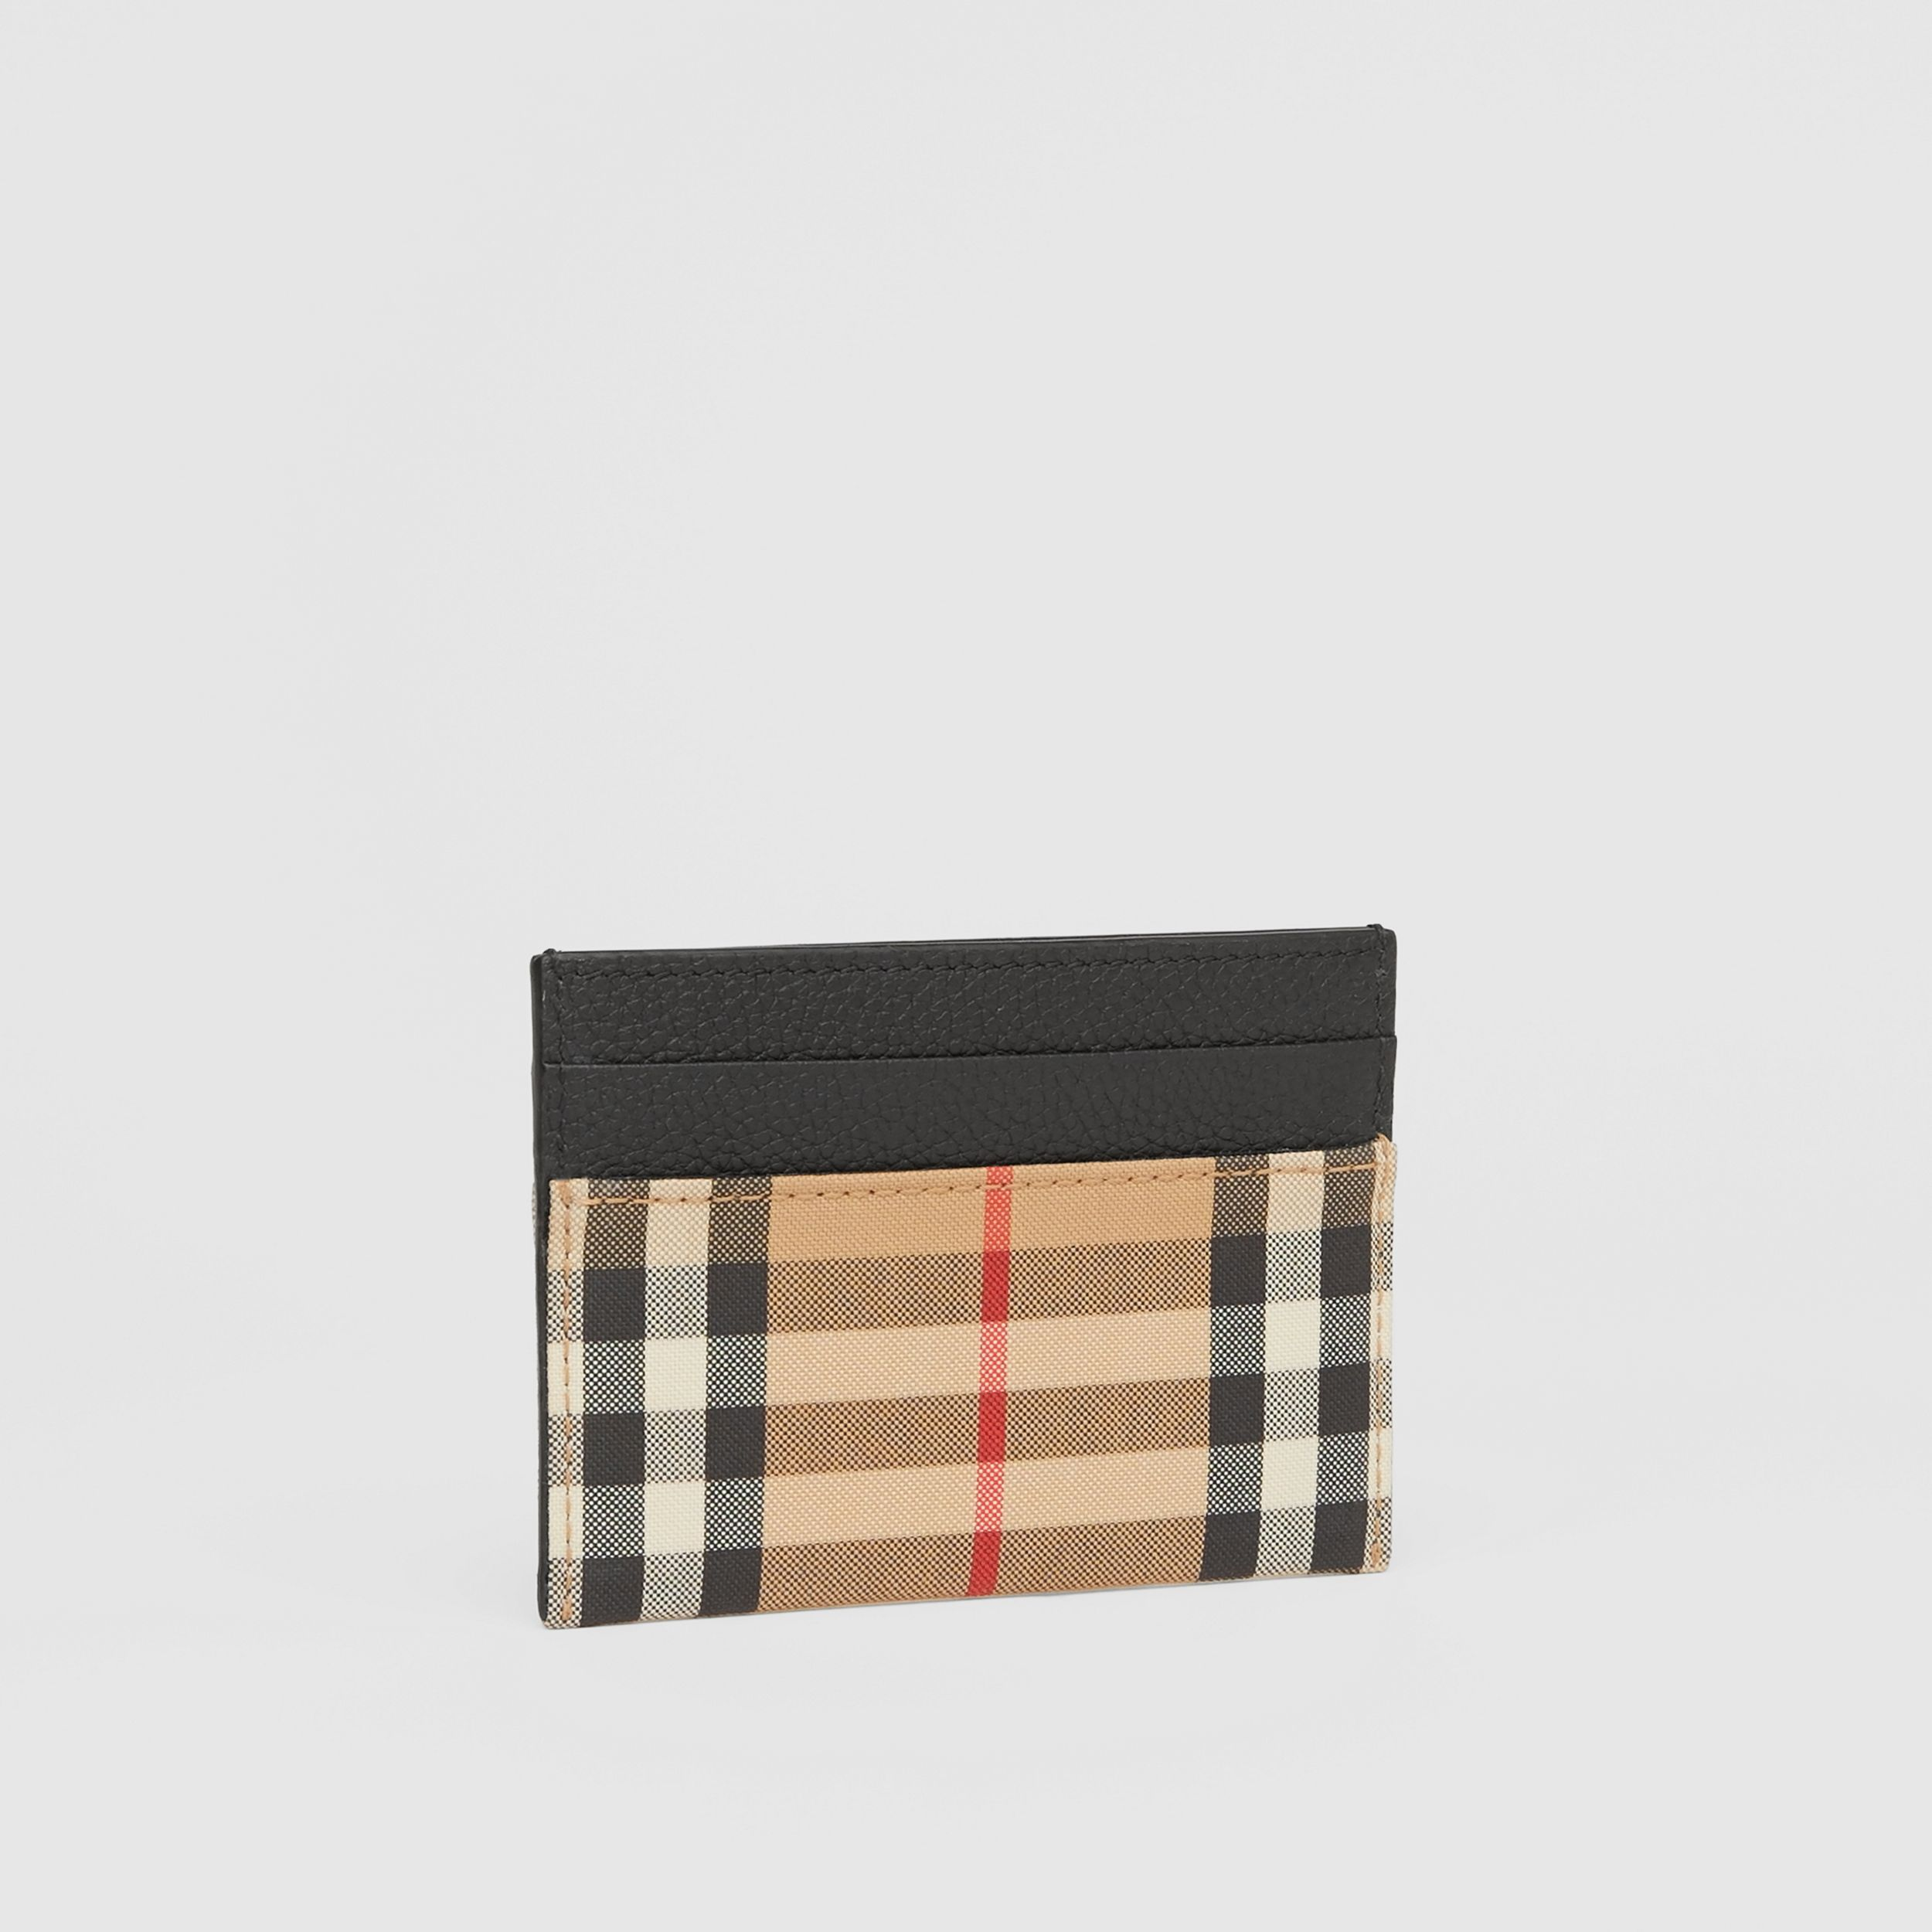 Vintage Check and Leather Card Case in Black - Women | Burberry United Kingdom - 4